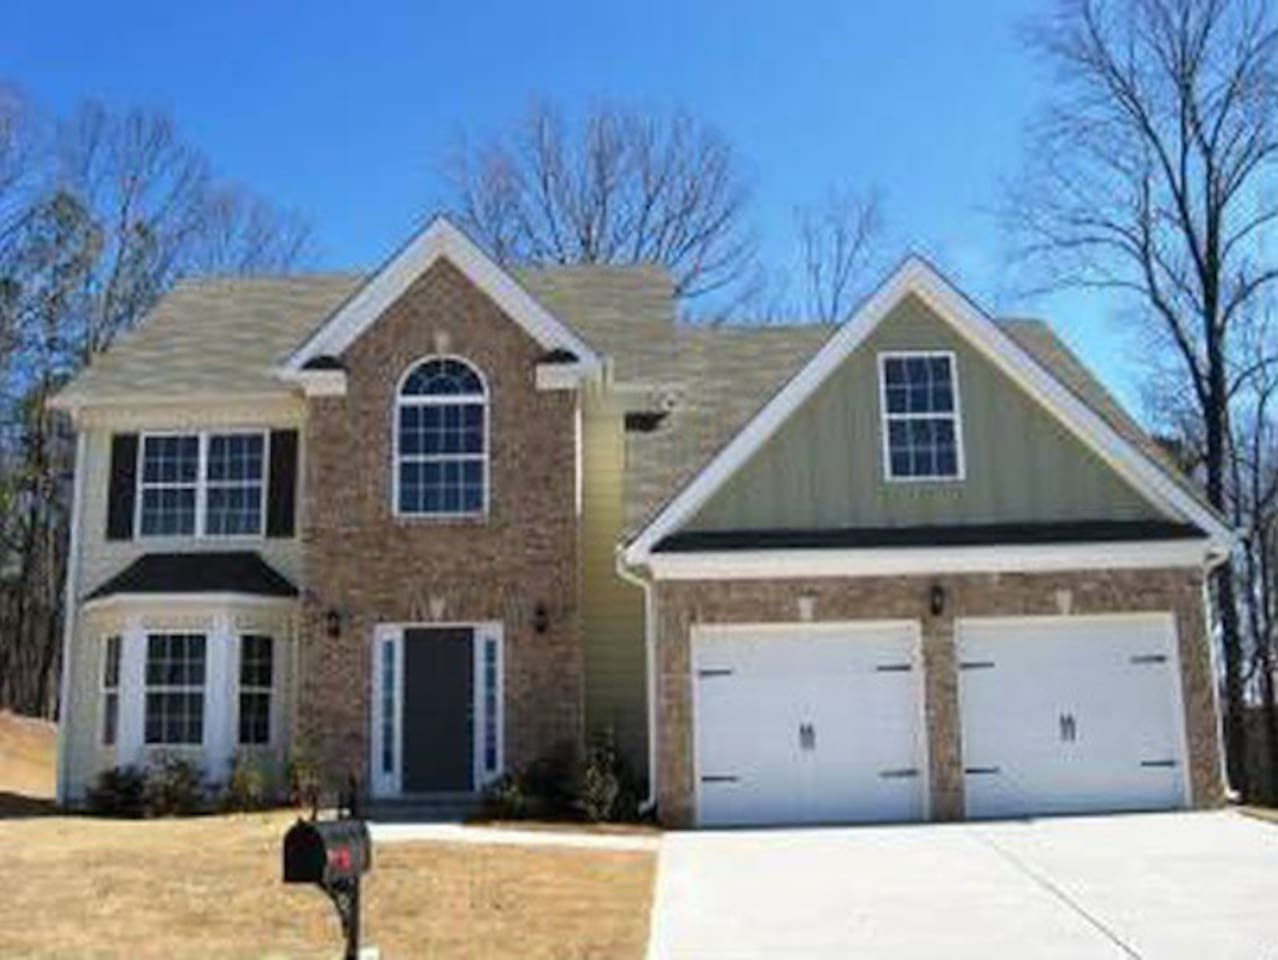 Tons of square footage! Waterford Plan. 4 bdrm/2.5 bath with Fireplace in Sunken Family Room, Breakfast area and island. Large Master Bedroom w/ dbl vanity and fireplace. Wired for security system